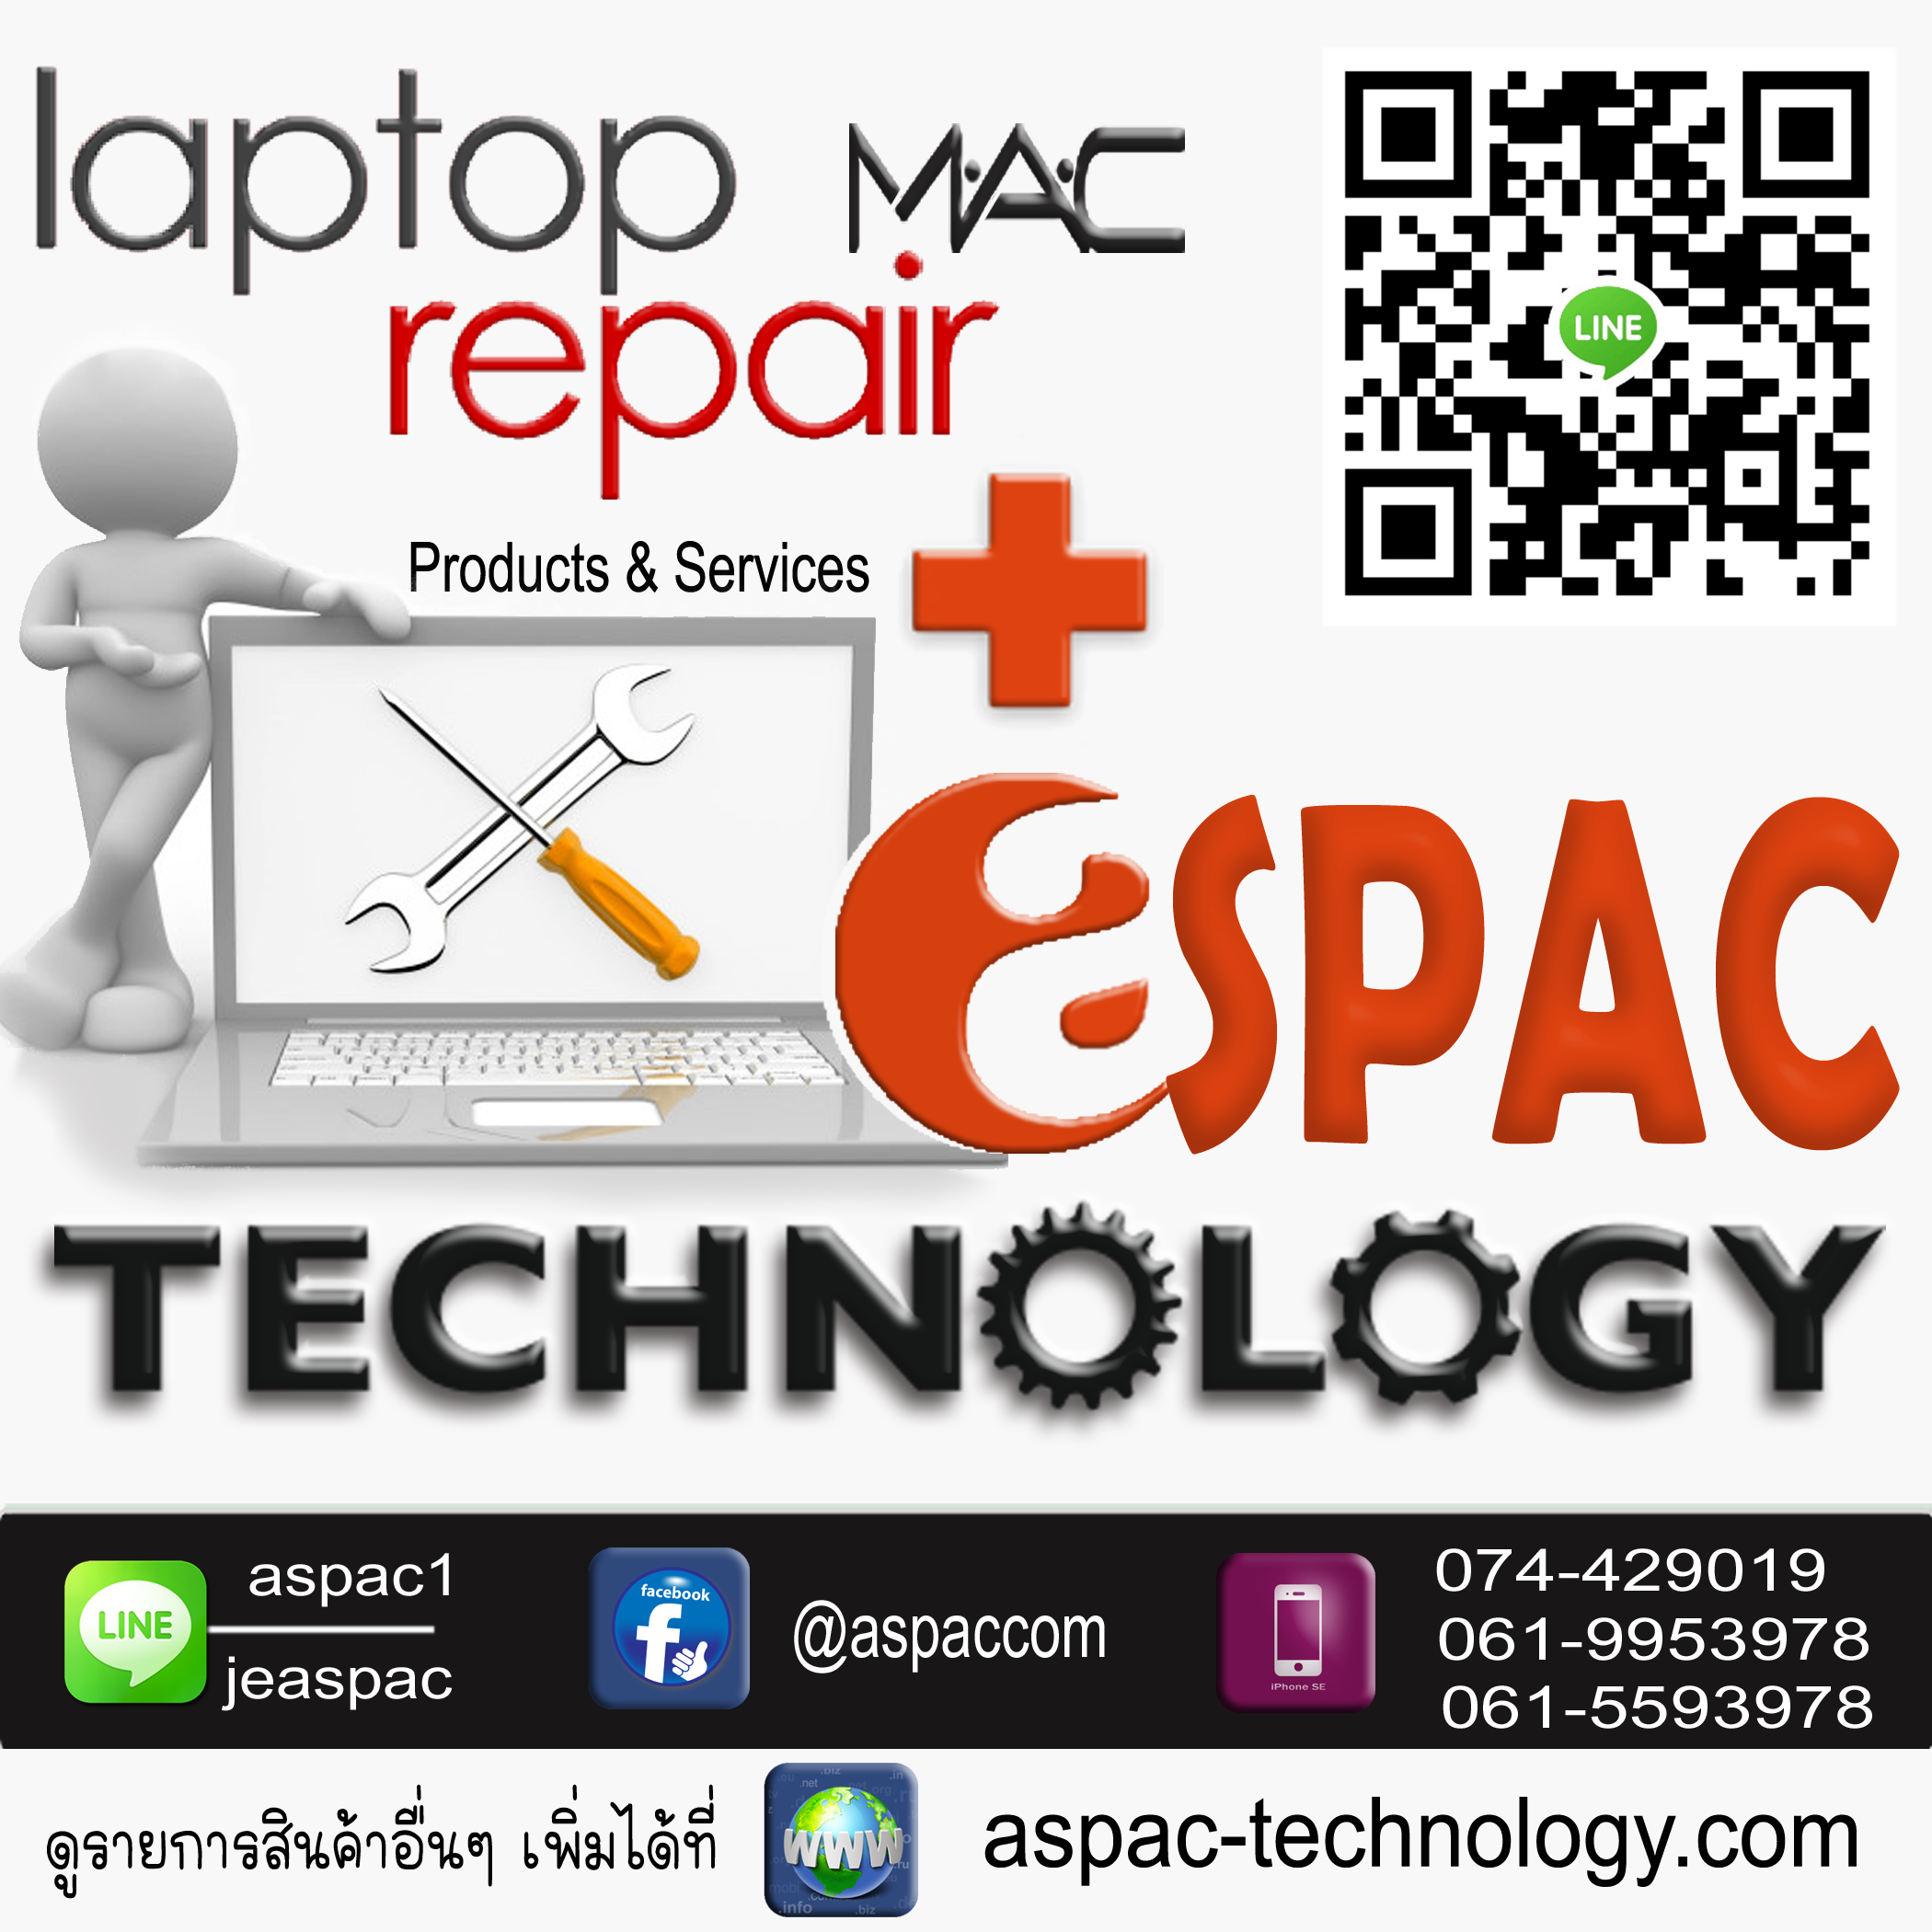 Laptop or MAC We canfix it all. Low prices on repair. Friendly and courteous staff. Excellent customer service